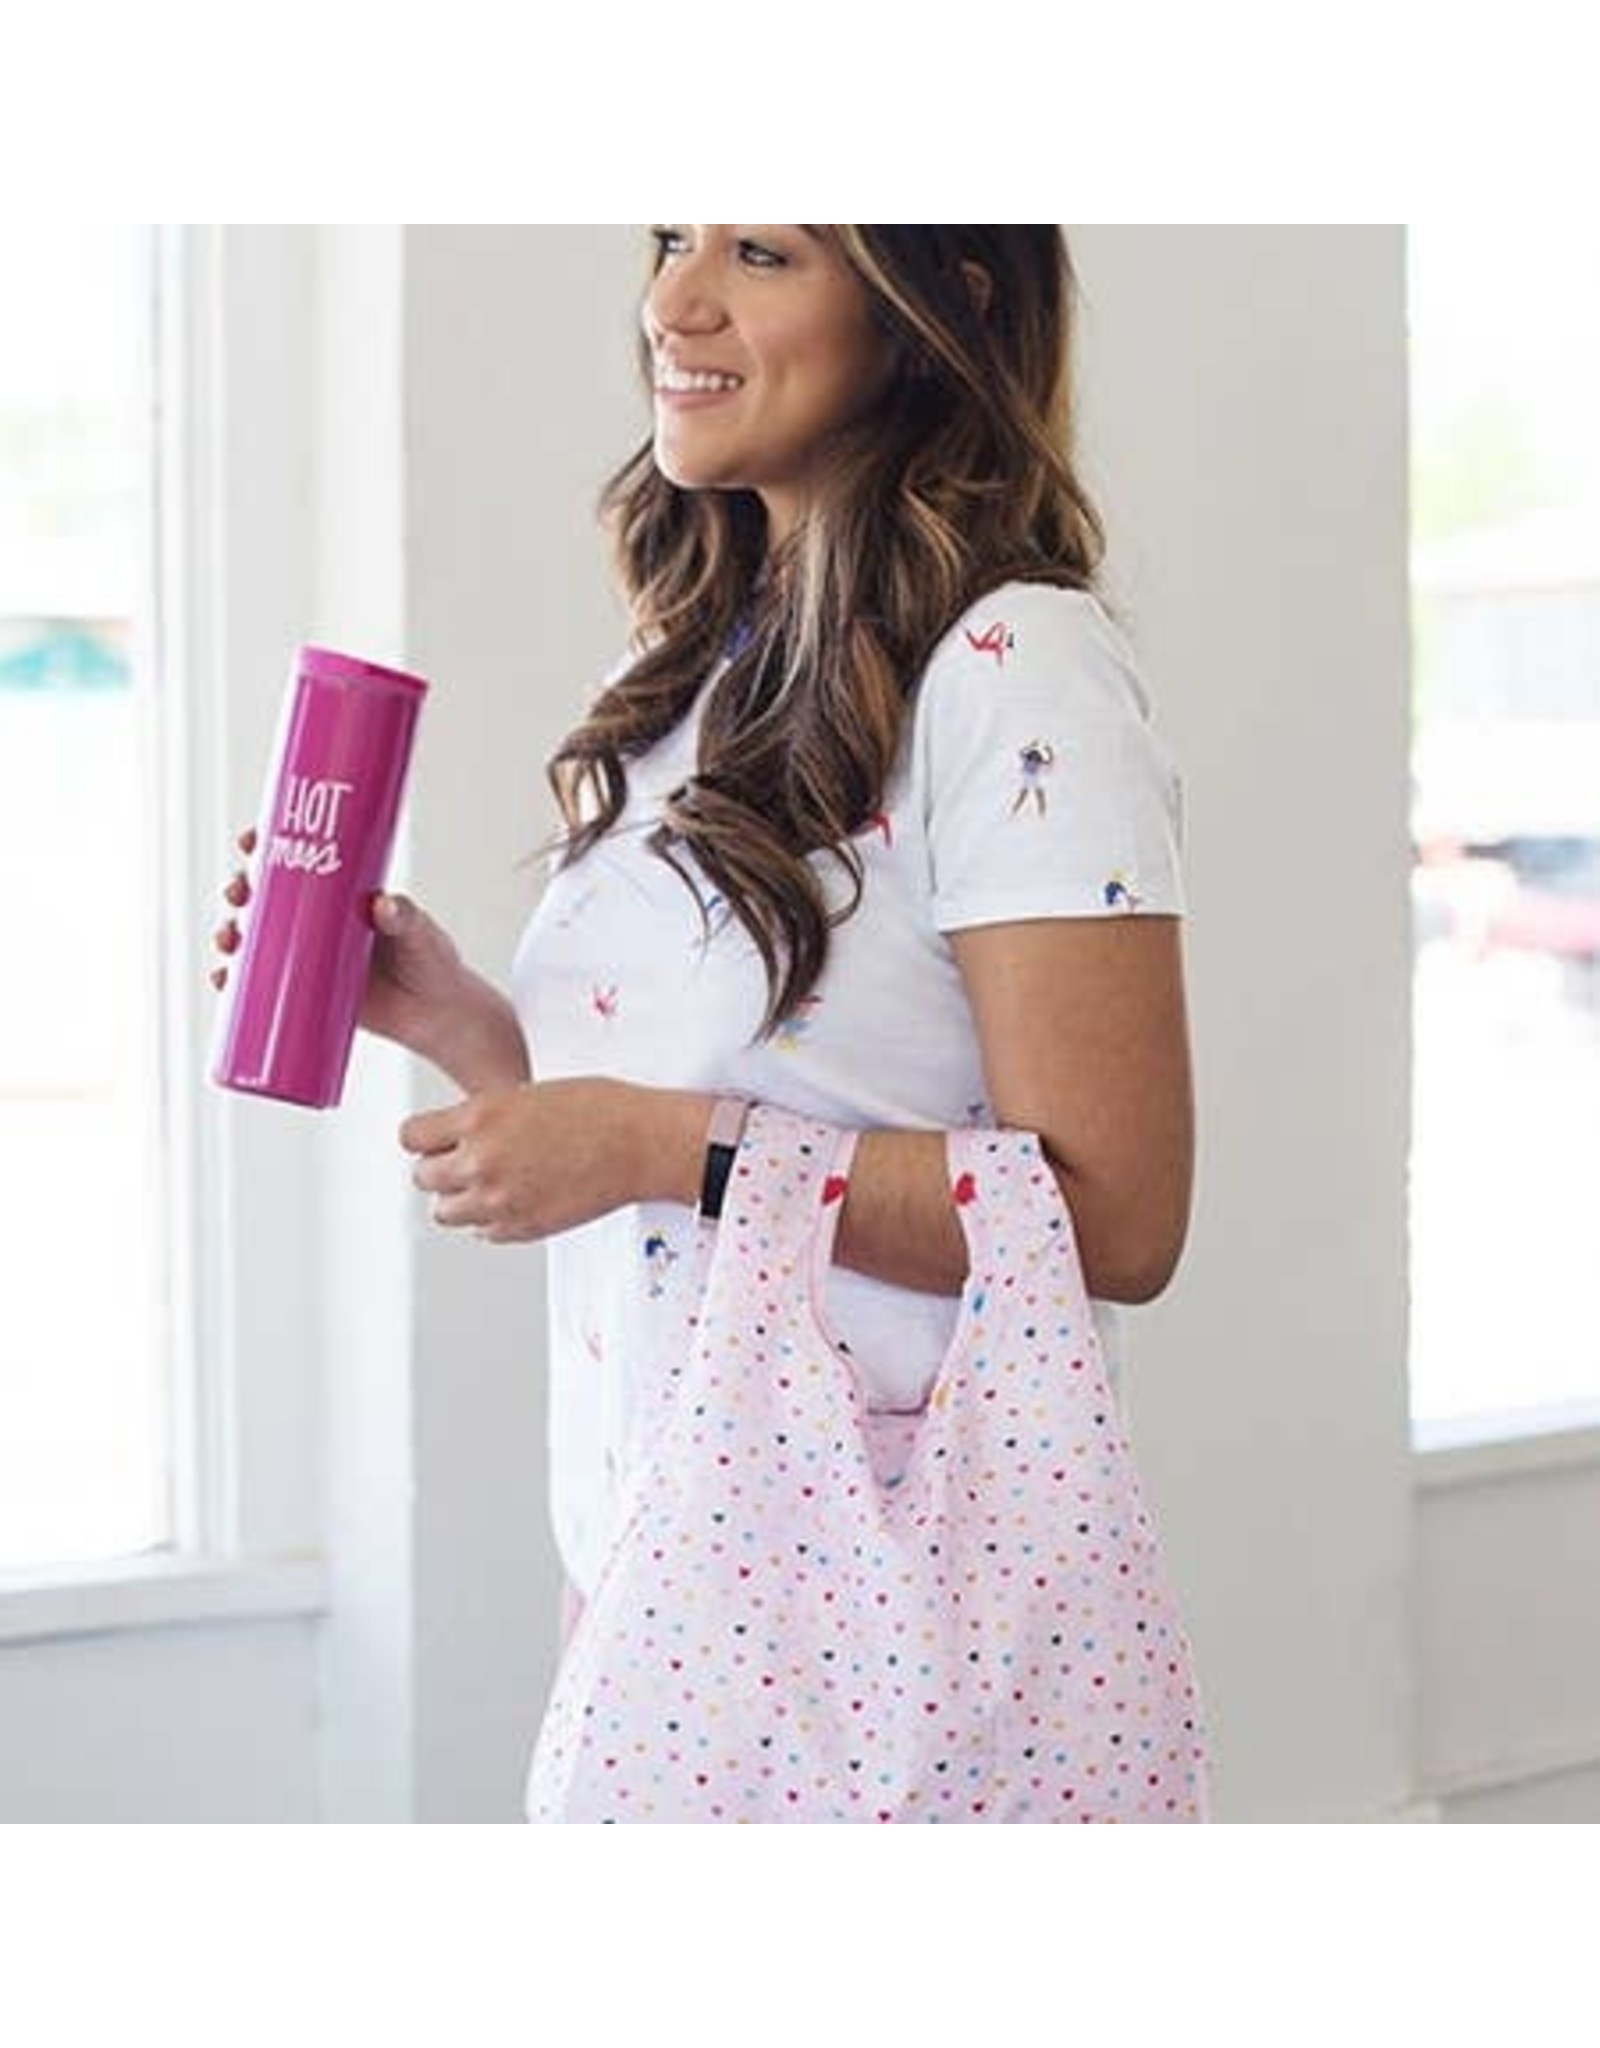 Talking Out of Turn Twist & Shout Reusable Bags - Tiny Heart